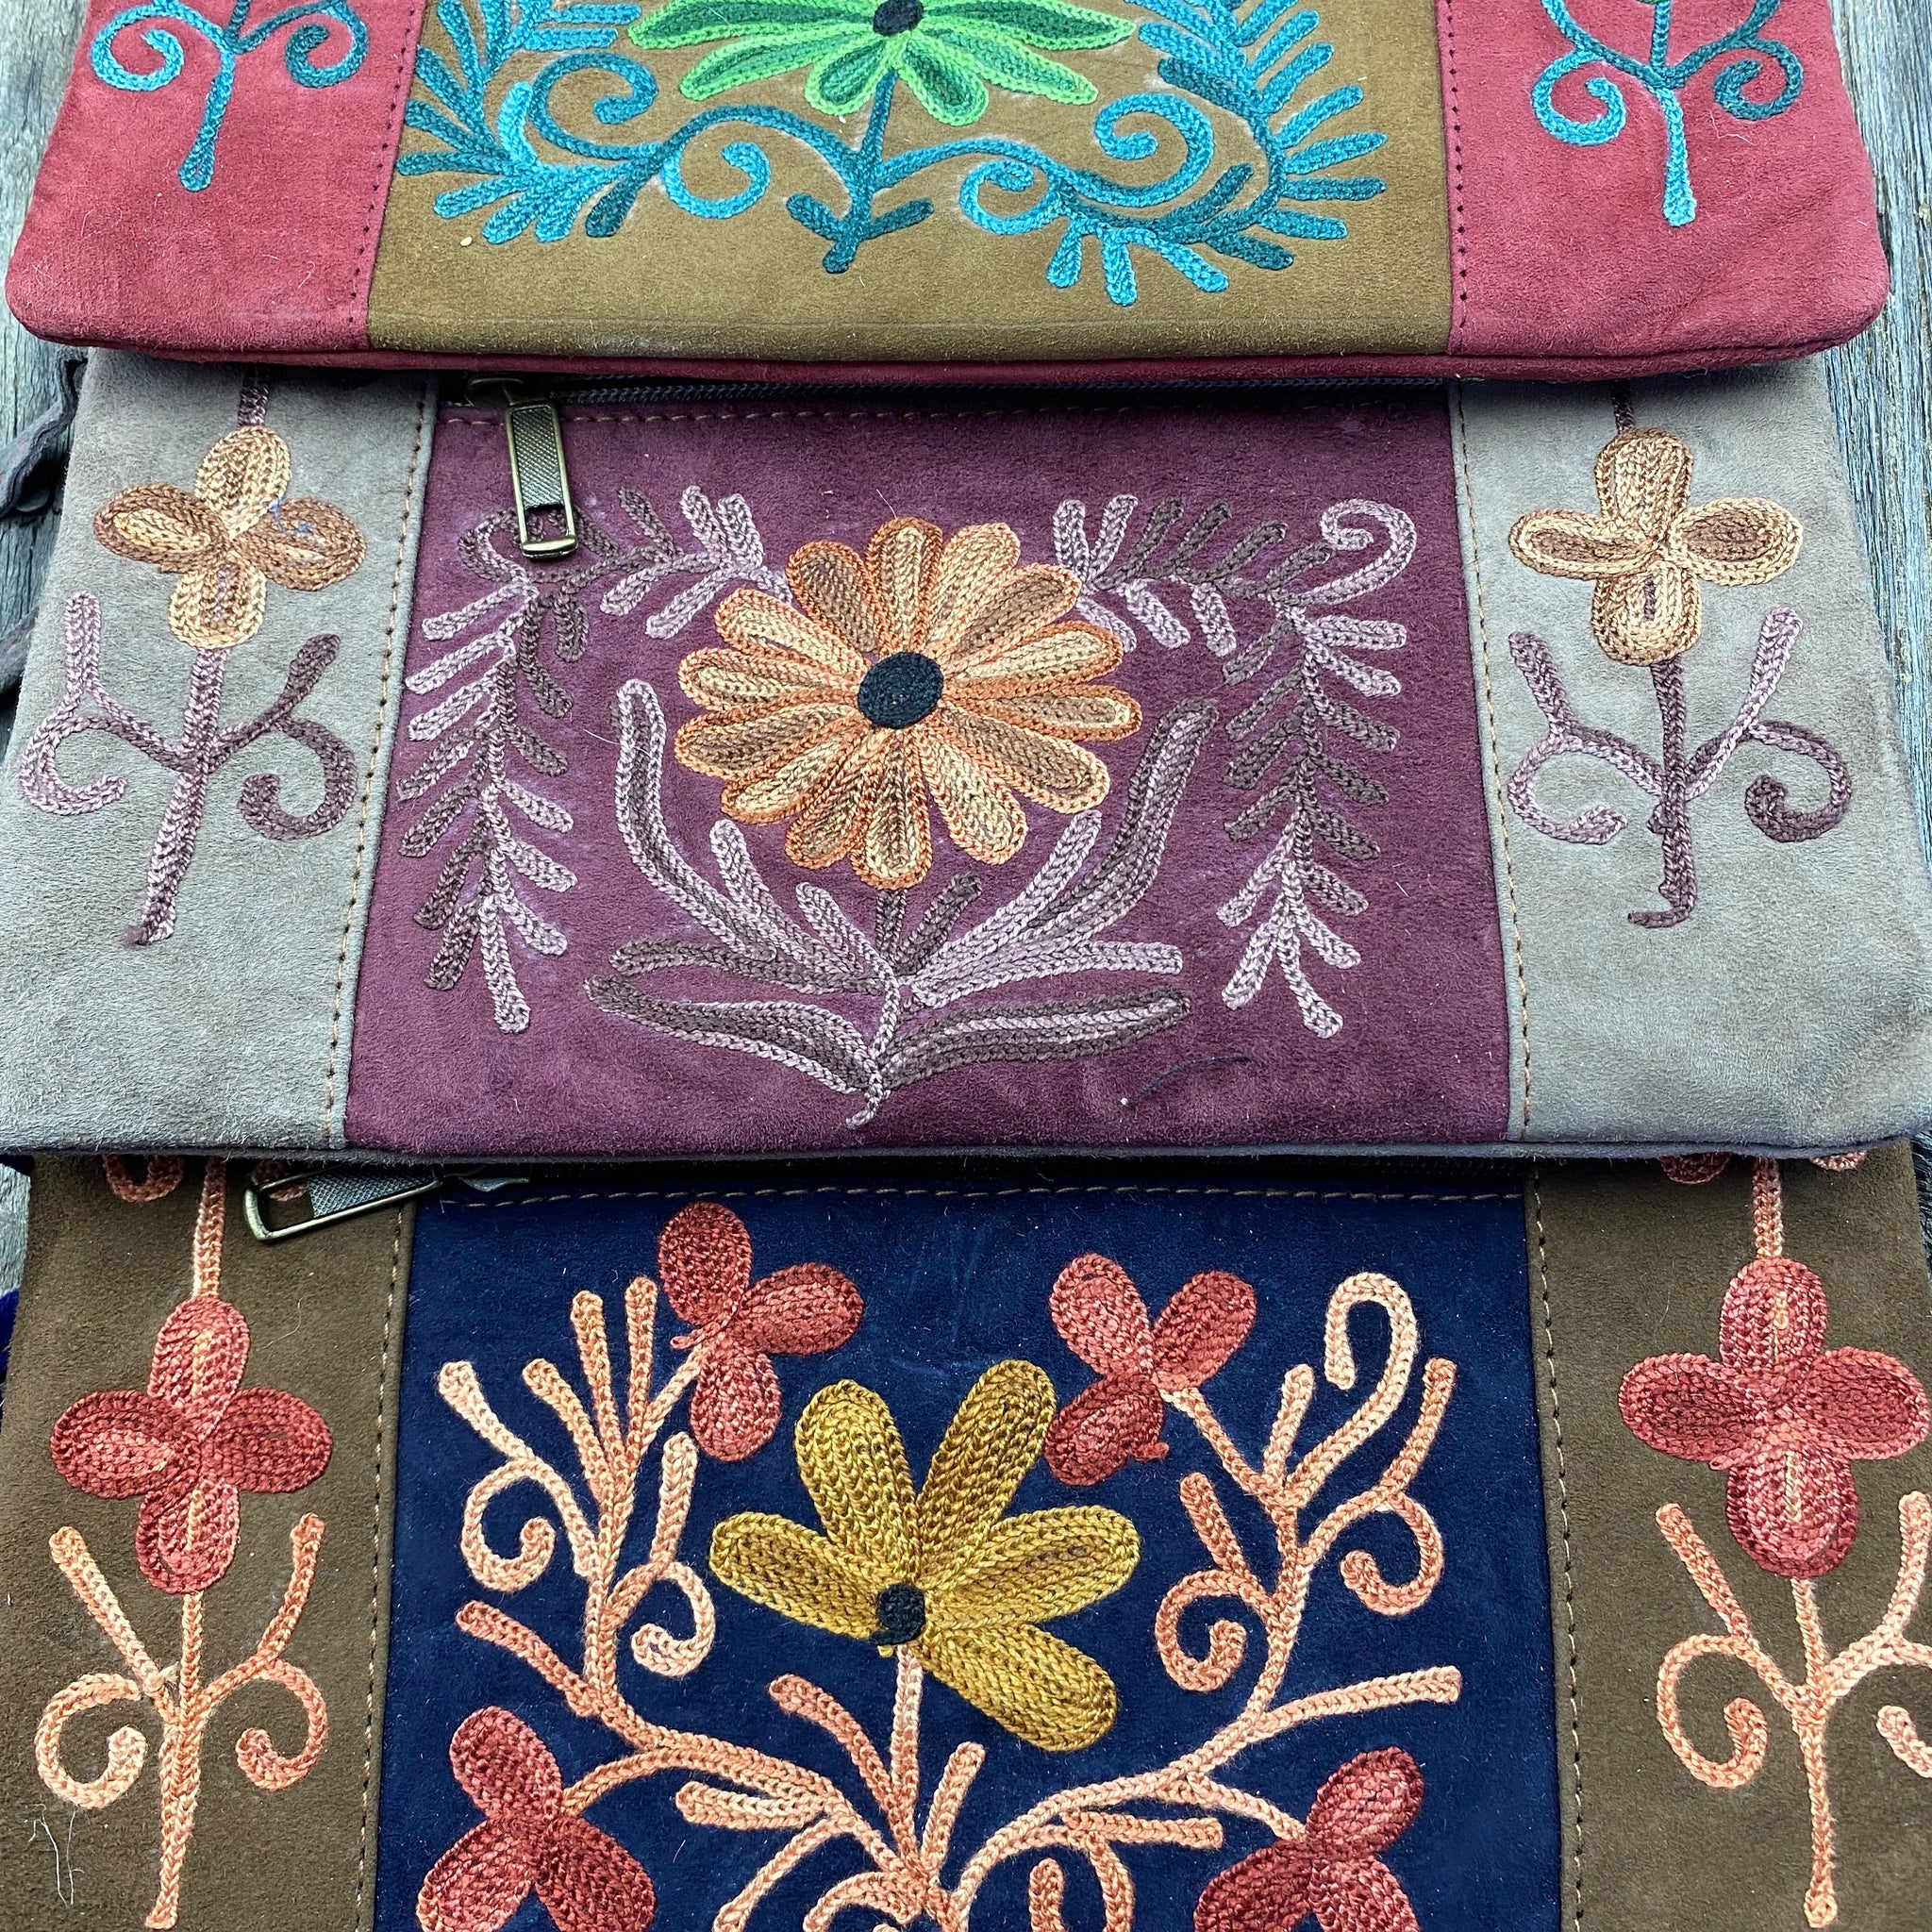 Fair Trade Ethical  Embroidered Suede Clutch Purse Assorted